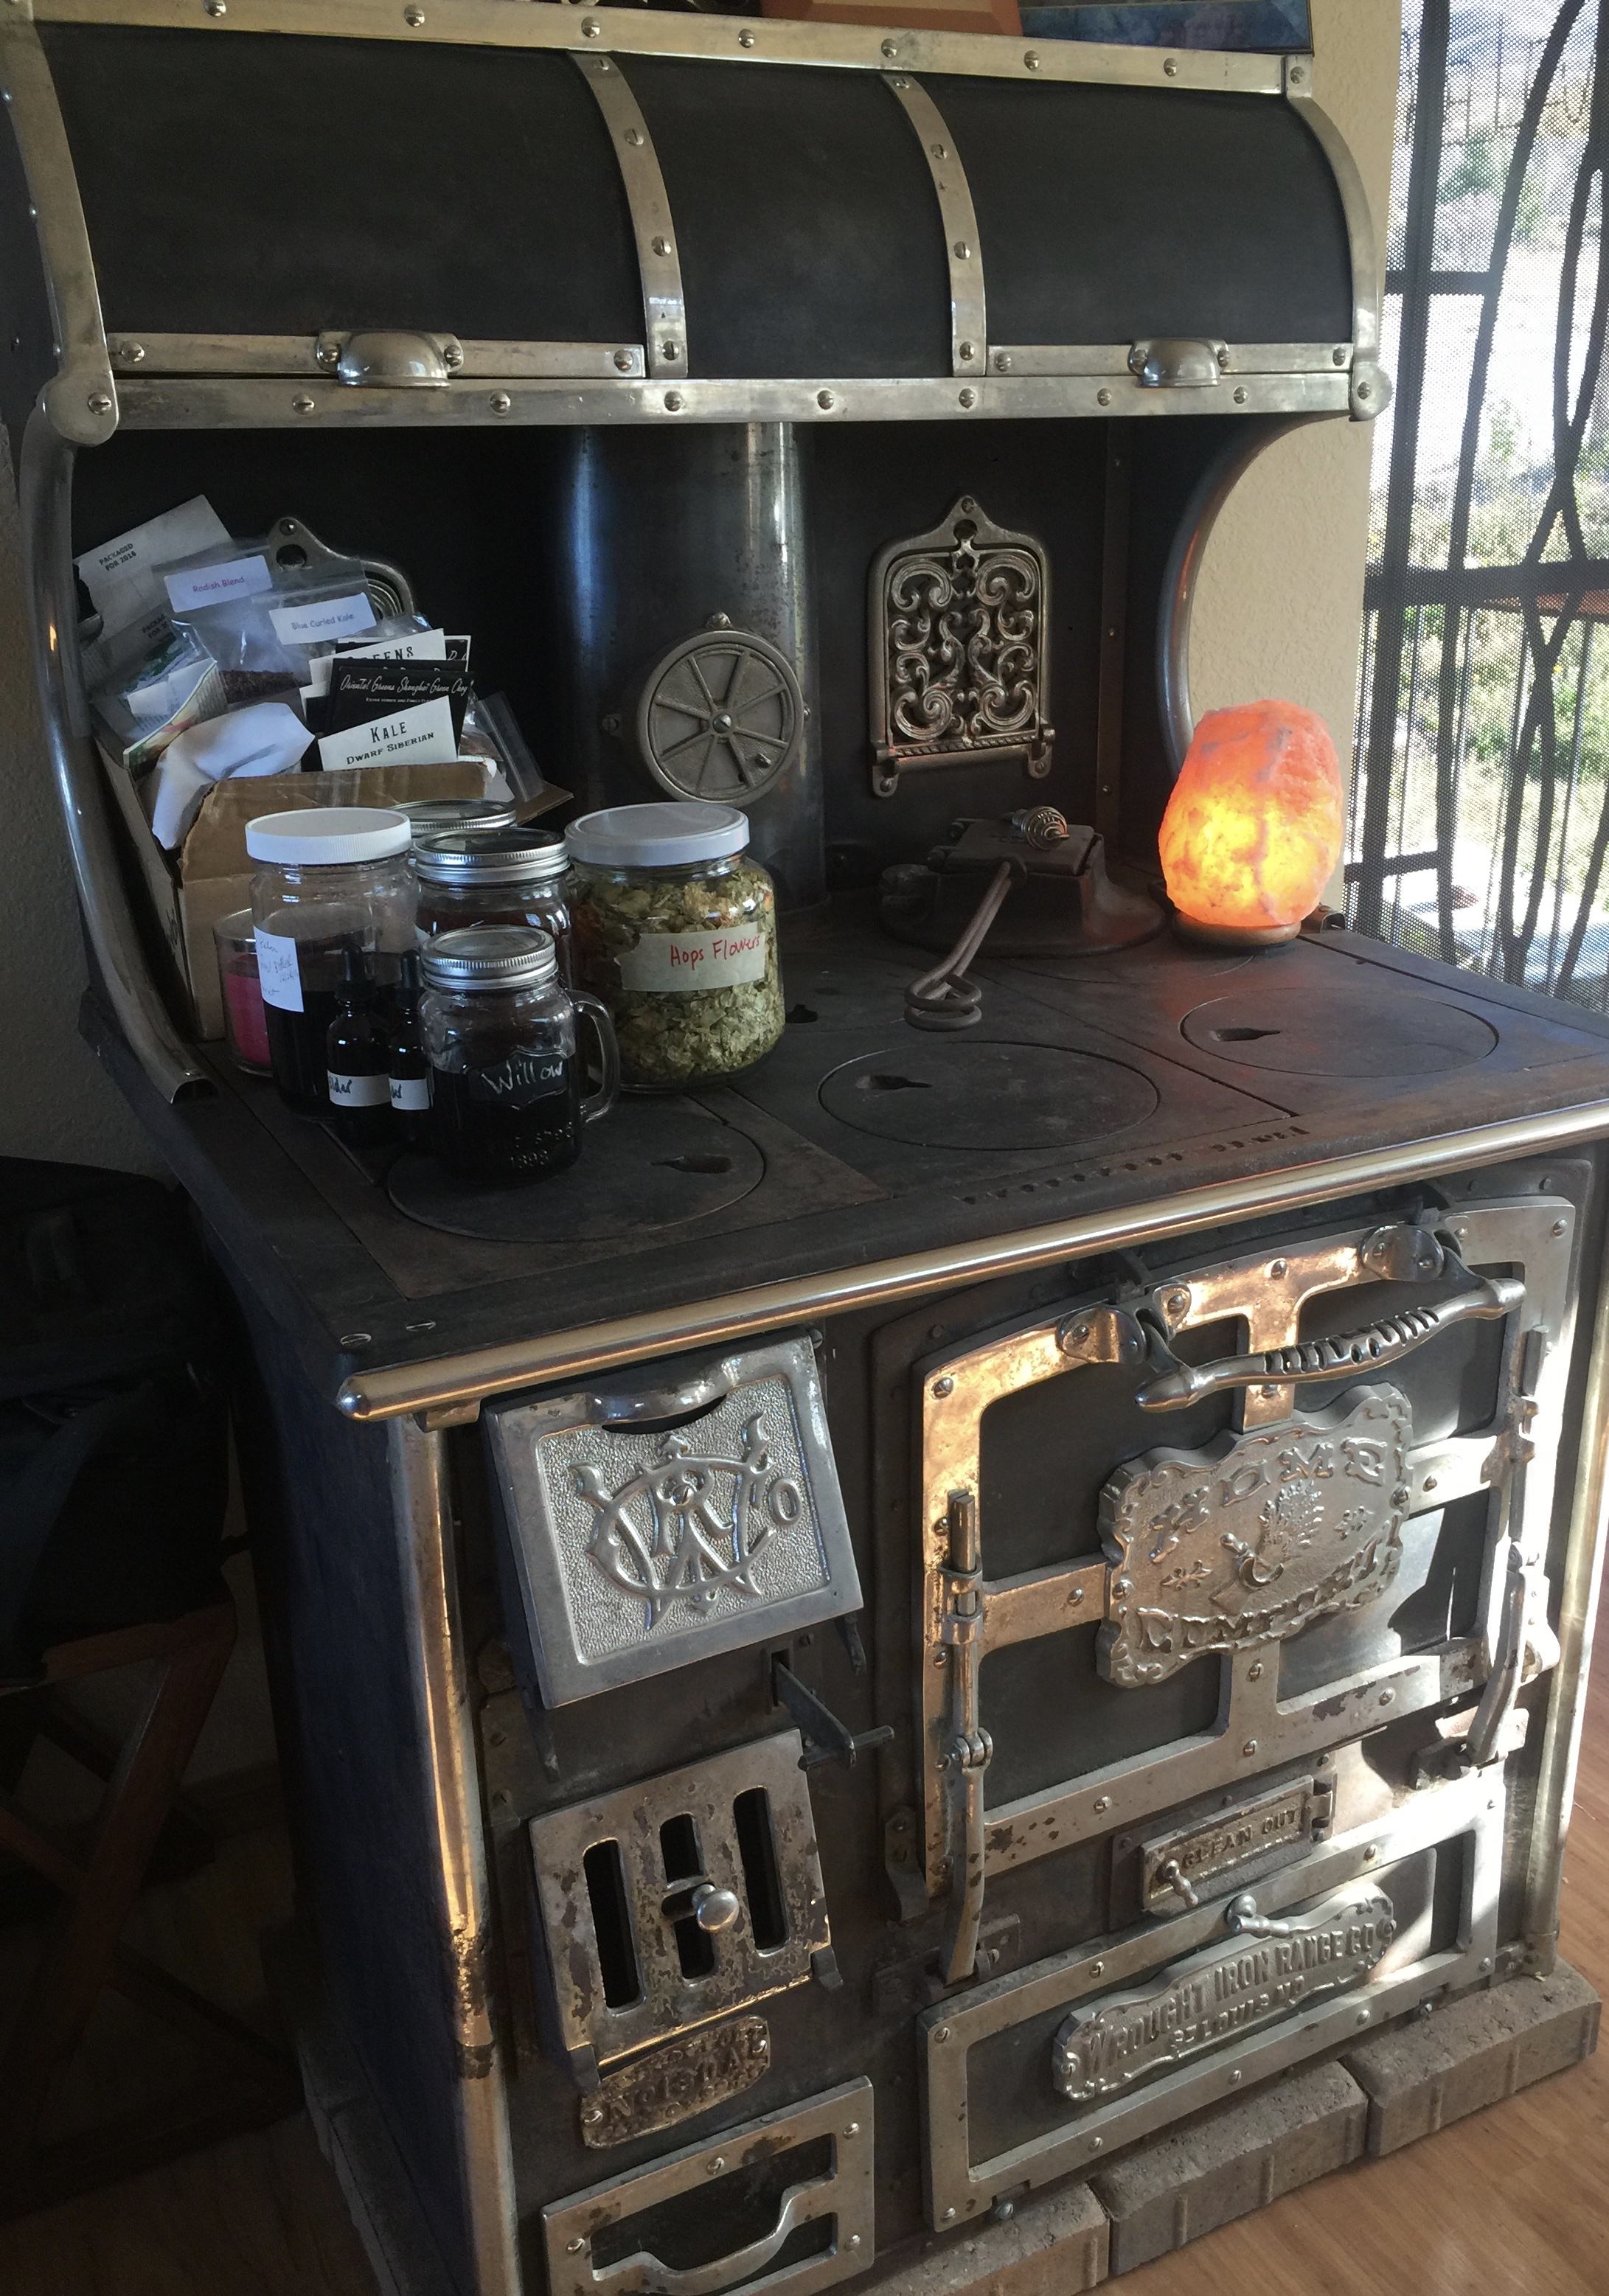 Here is our stove. Sorry---I've got some of my tinctures, herbs, and seeds up there right now. It's summer, after all!